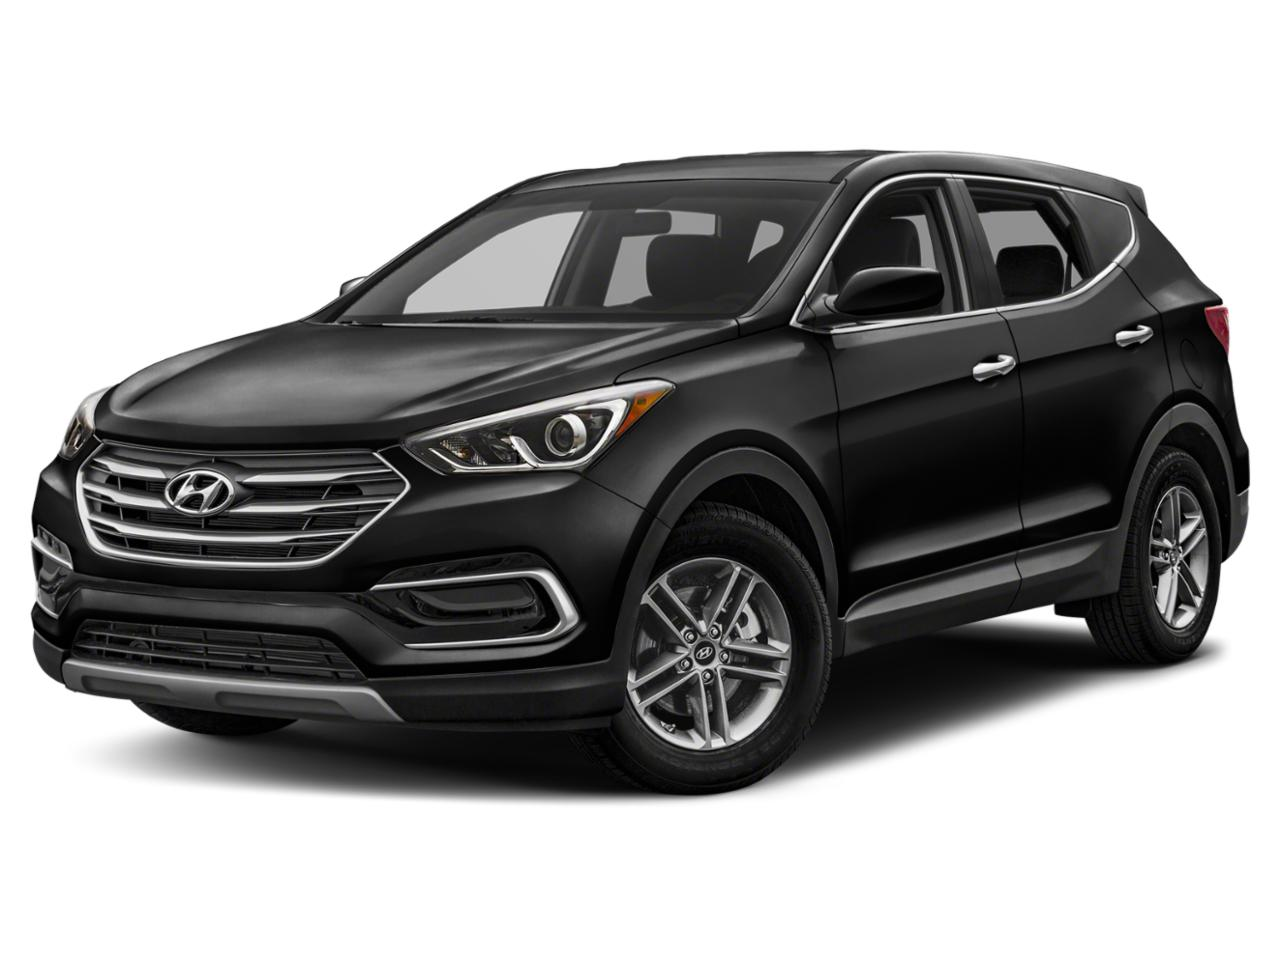 2018 Hyundai Santa Fe Sport Vehicle Photo in Manassas, VA 20109